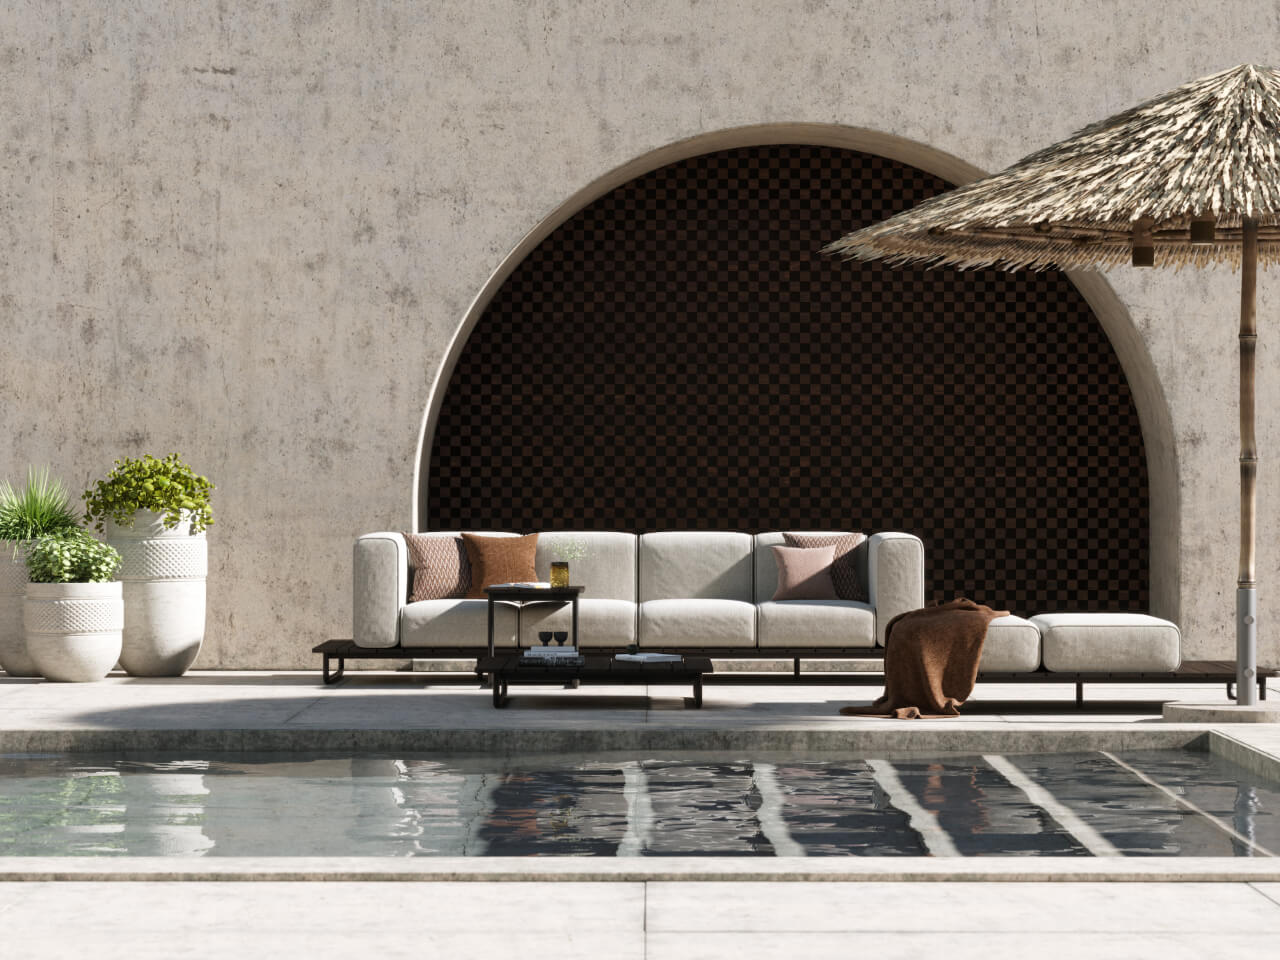 outdoor-collection-domkapa-summer-interior-design-trends